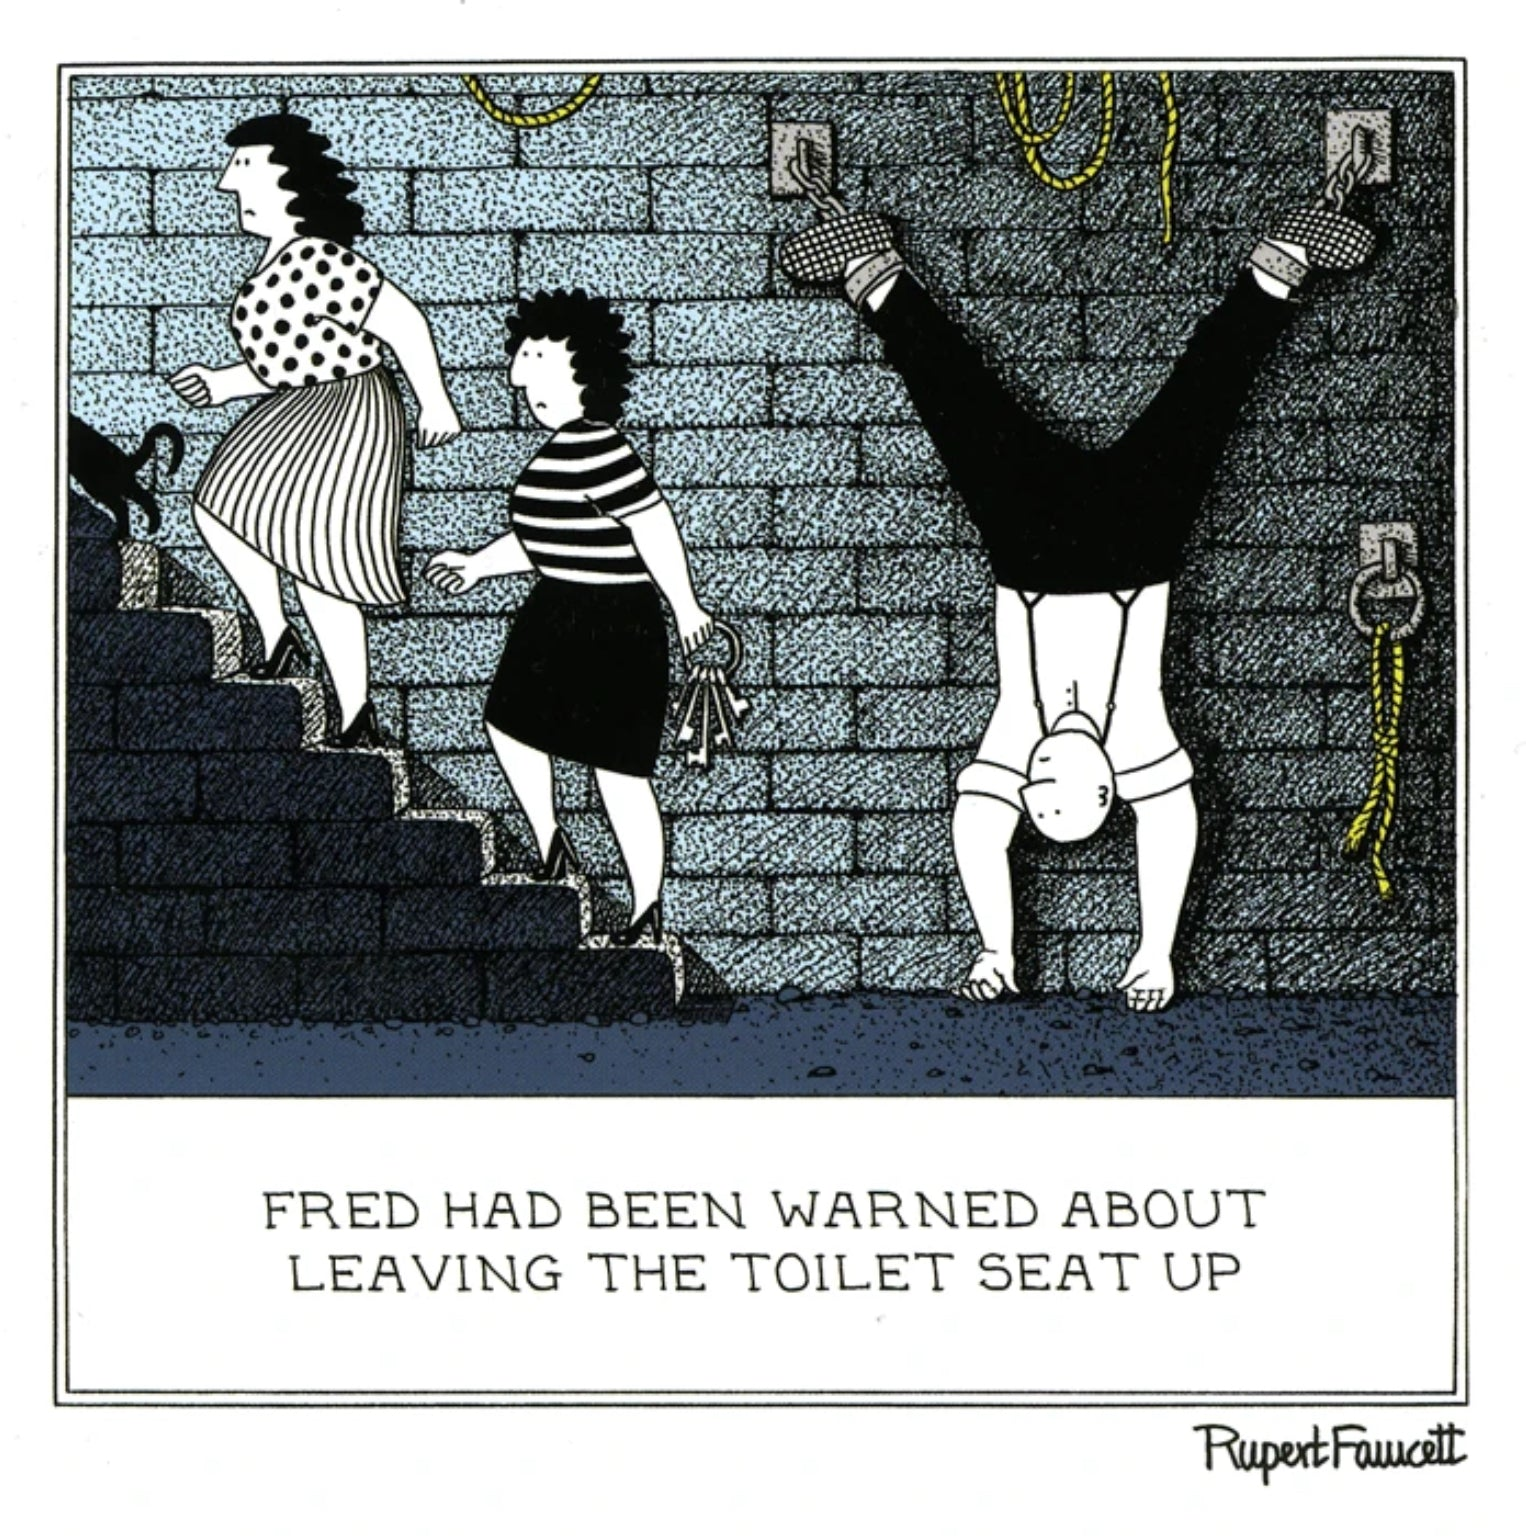 FRED HAD BEEN WARNED ABOUT LEAVING THE TOILET SEAT UP